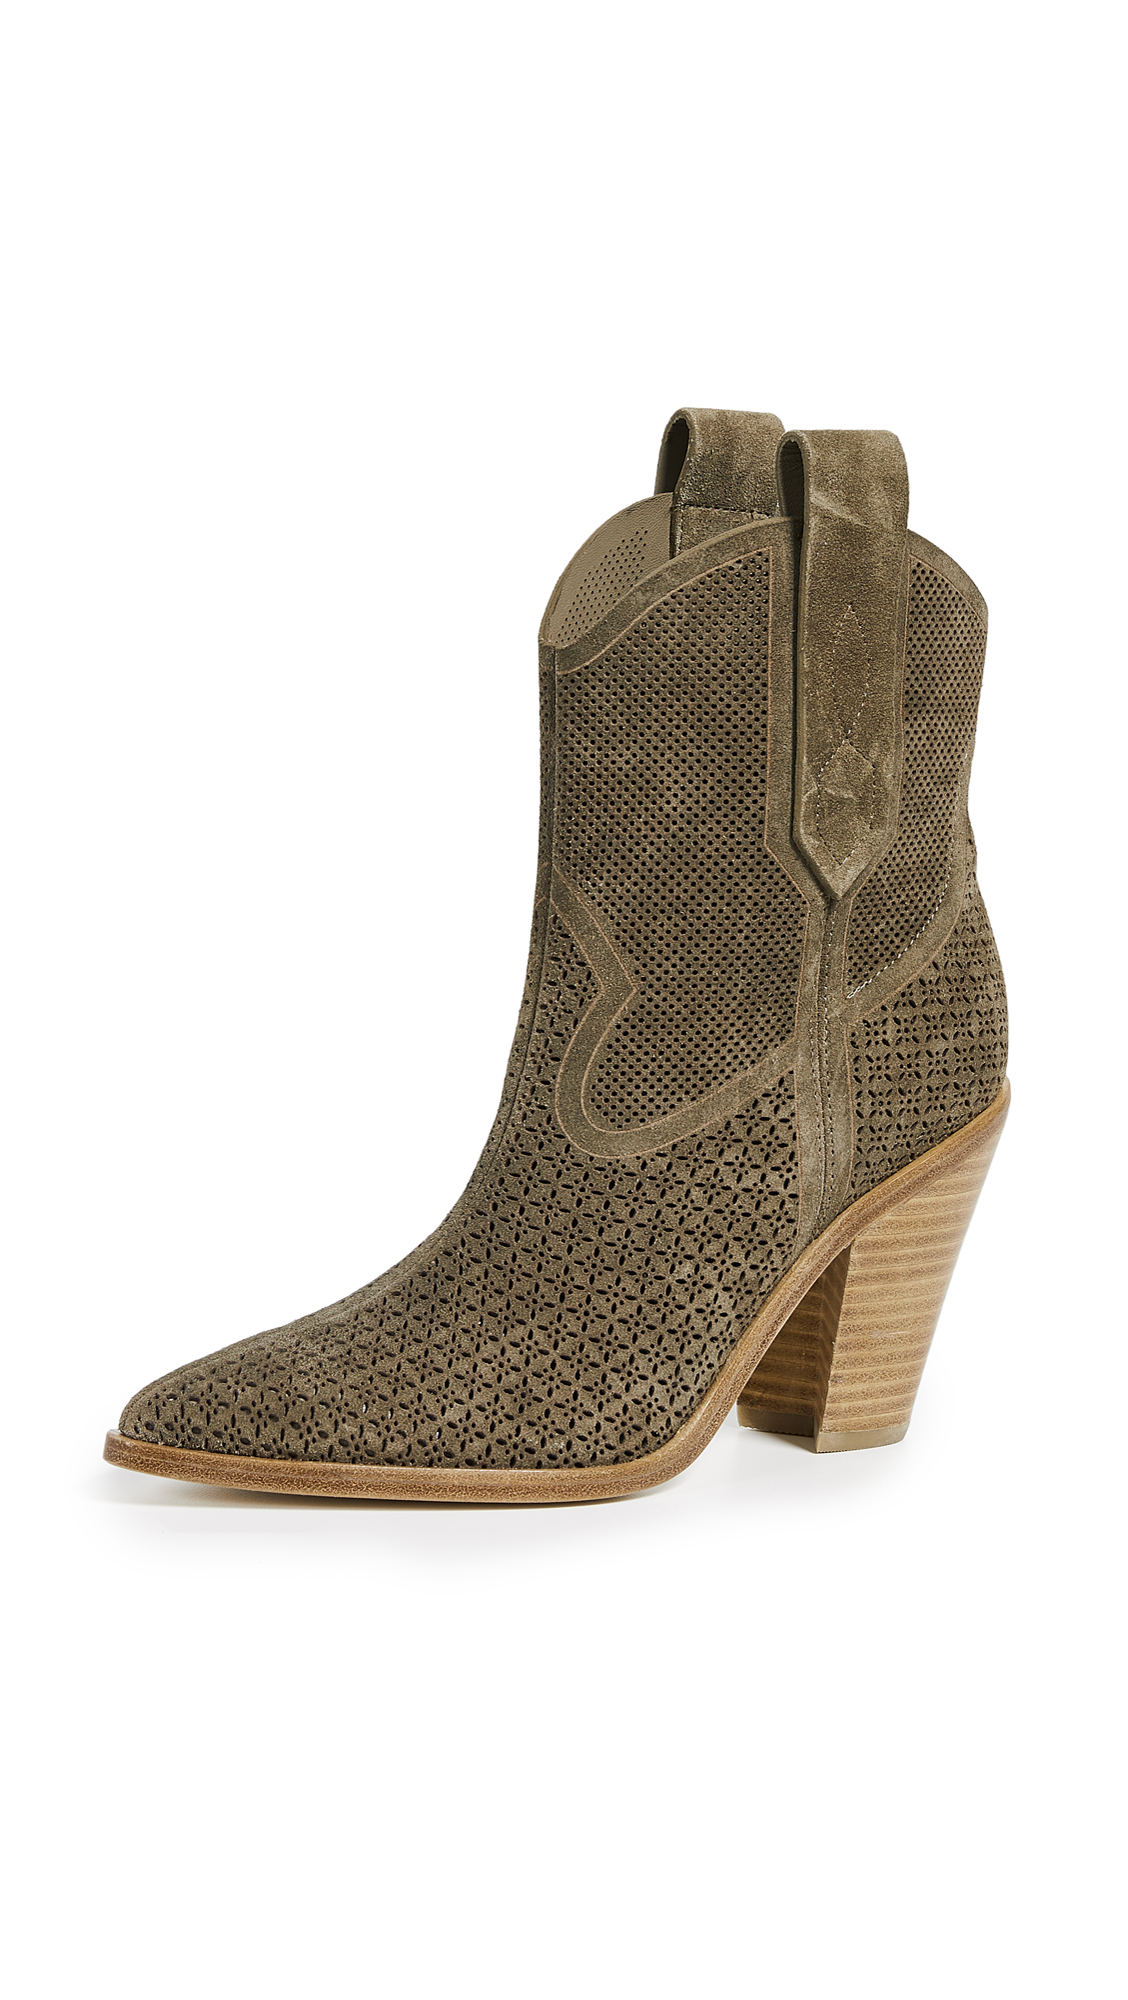 Sigerson Morrison Suede Karka Perforated Booties - Taupe